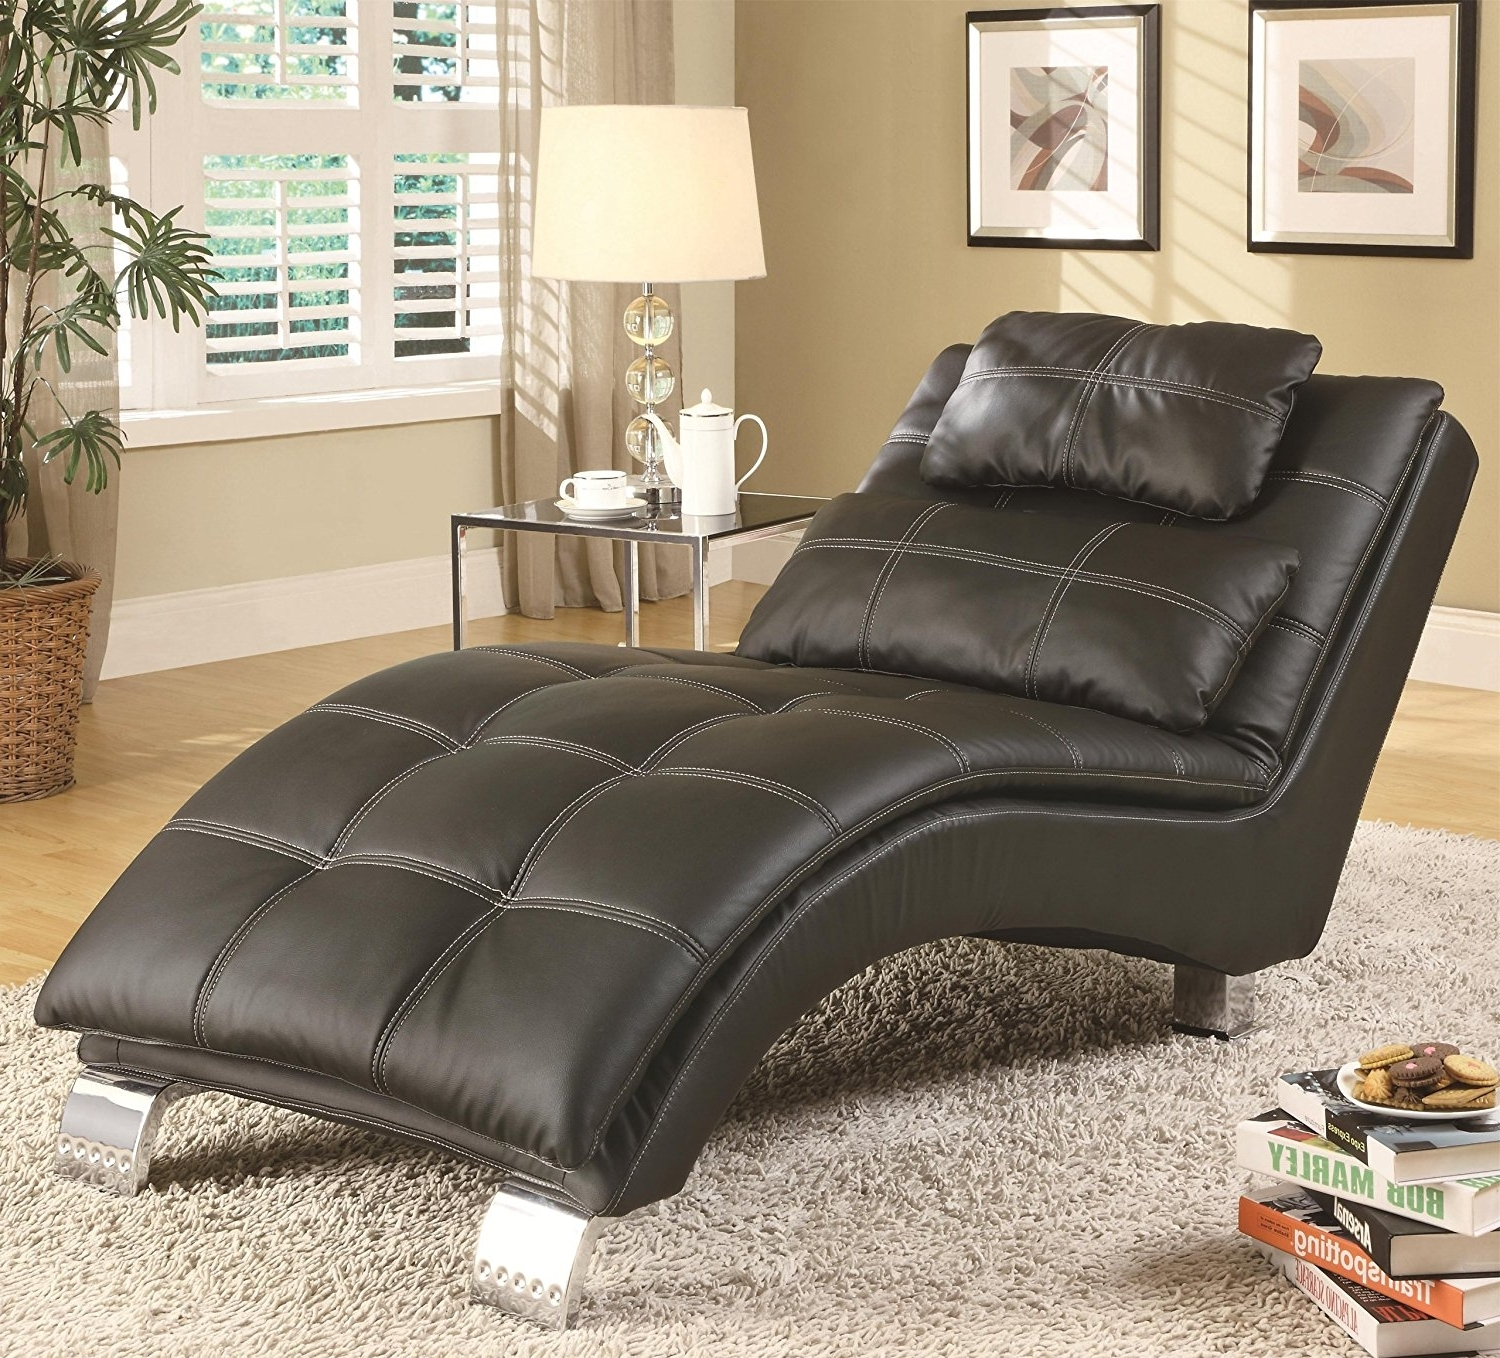 Most Up To Date Luxury Chaise Lounge Chairs Within Luxury Chaise Lounge Chairs For Living Room X1 # (View 13 of 15)